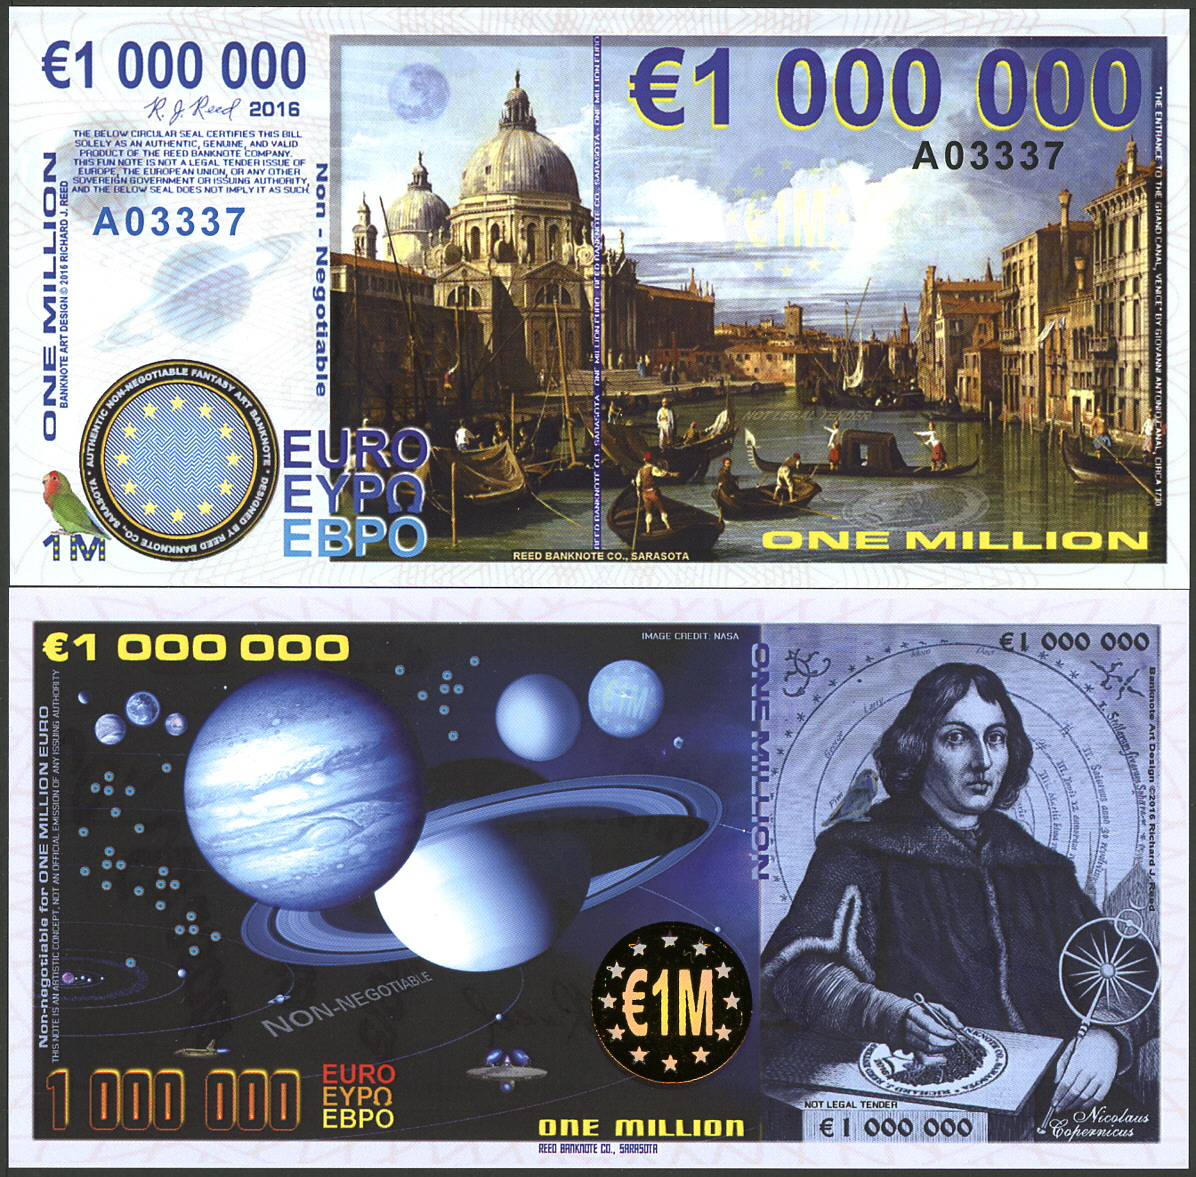 EUROPE ONE MILLION EURO POLYMER COPERNICUS FILM COMMEMORATIVE FANTASY NOTE!